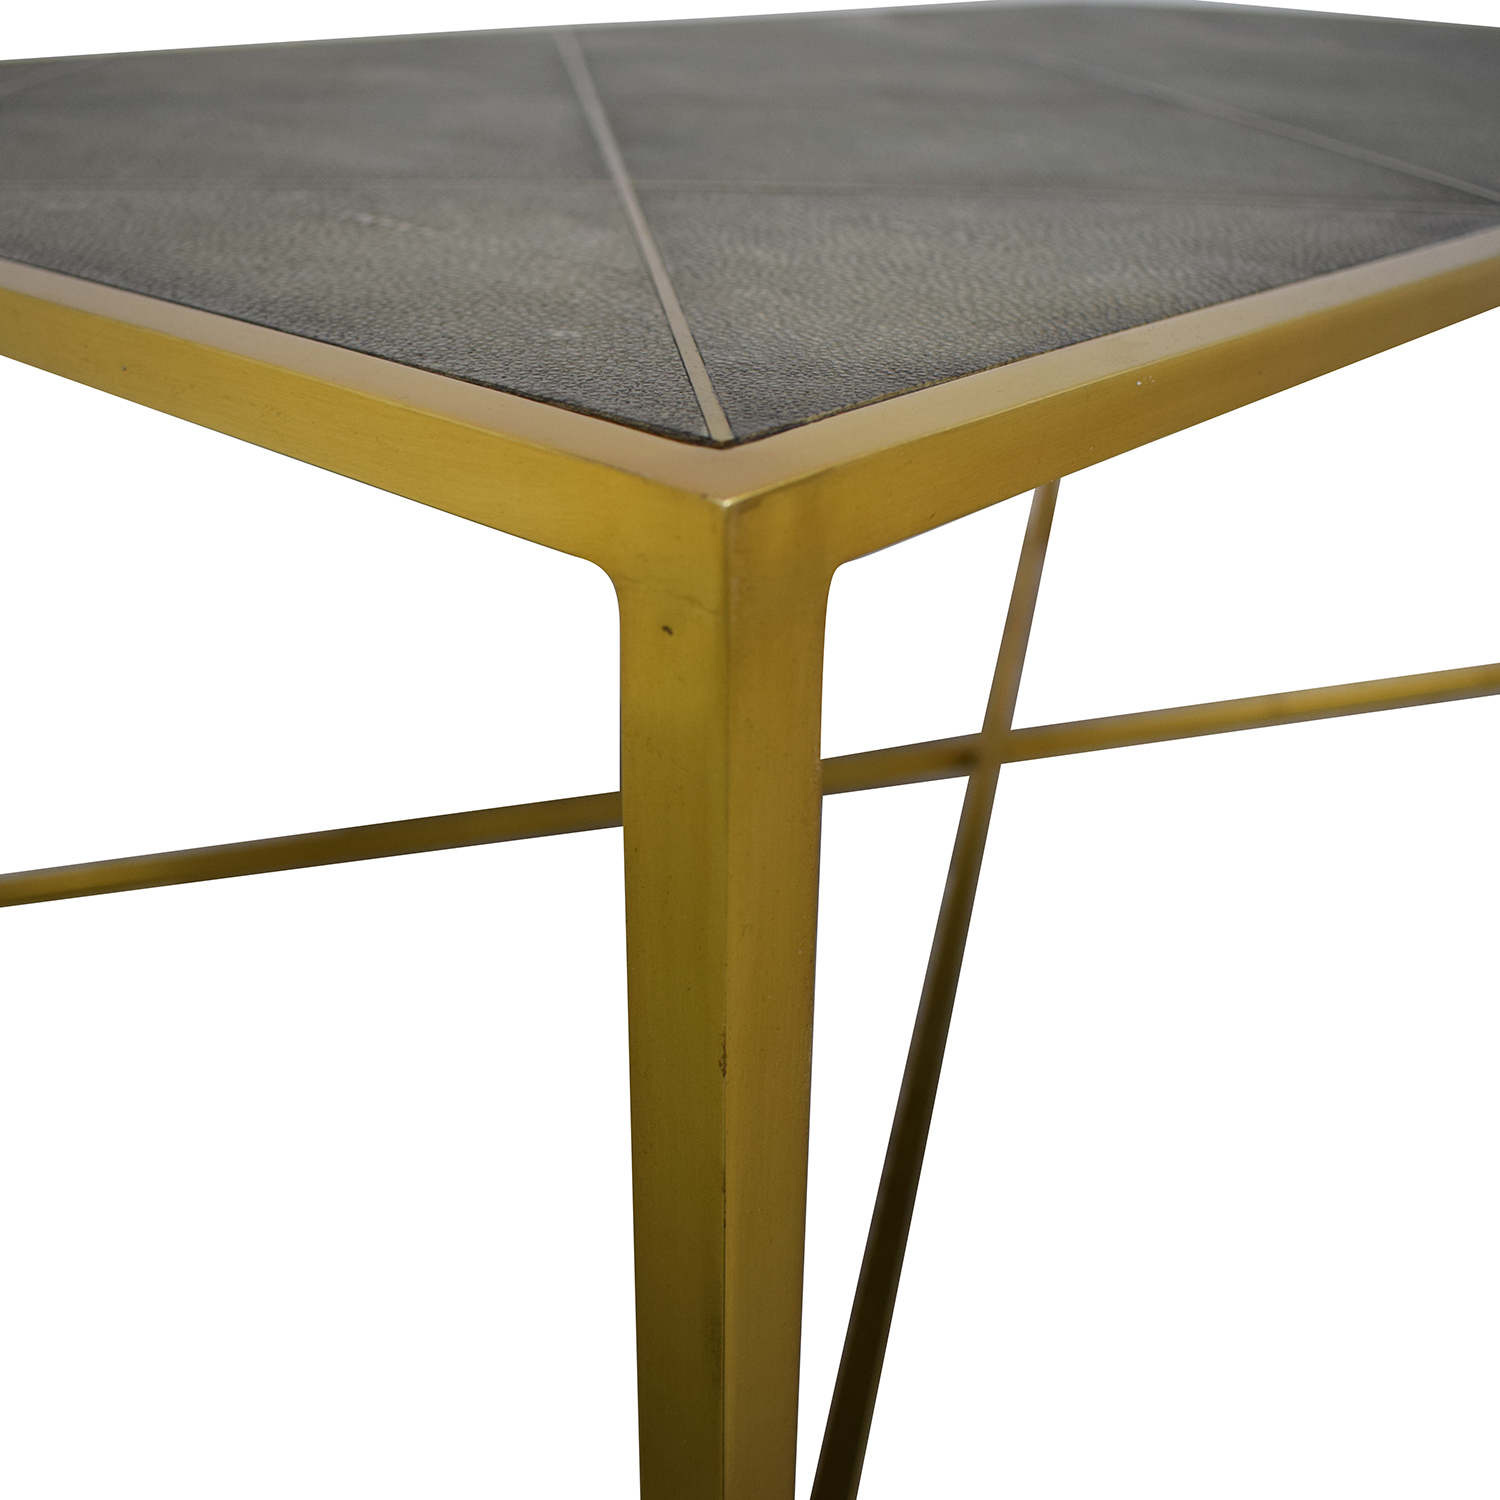 79% OFF   One Kings Lane One Kings Lane Theodore Alexander Shagreen Coffee  Table / Tables